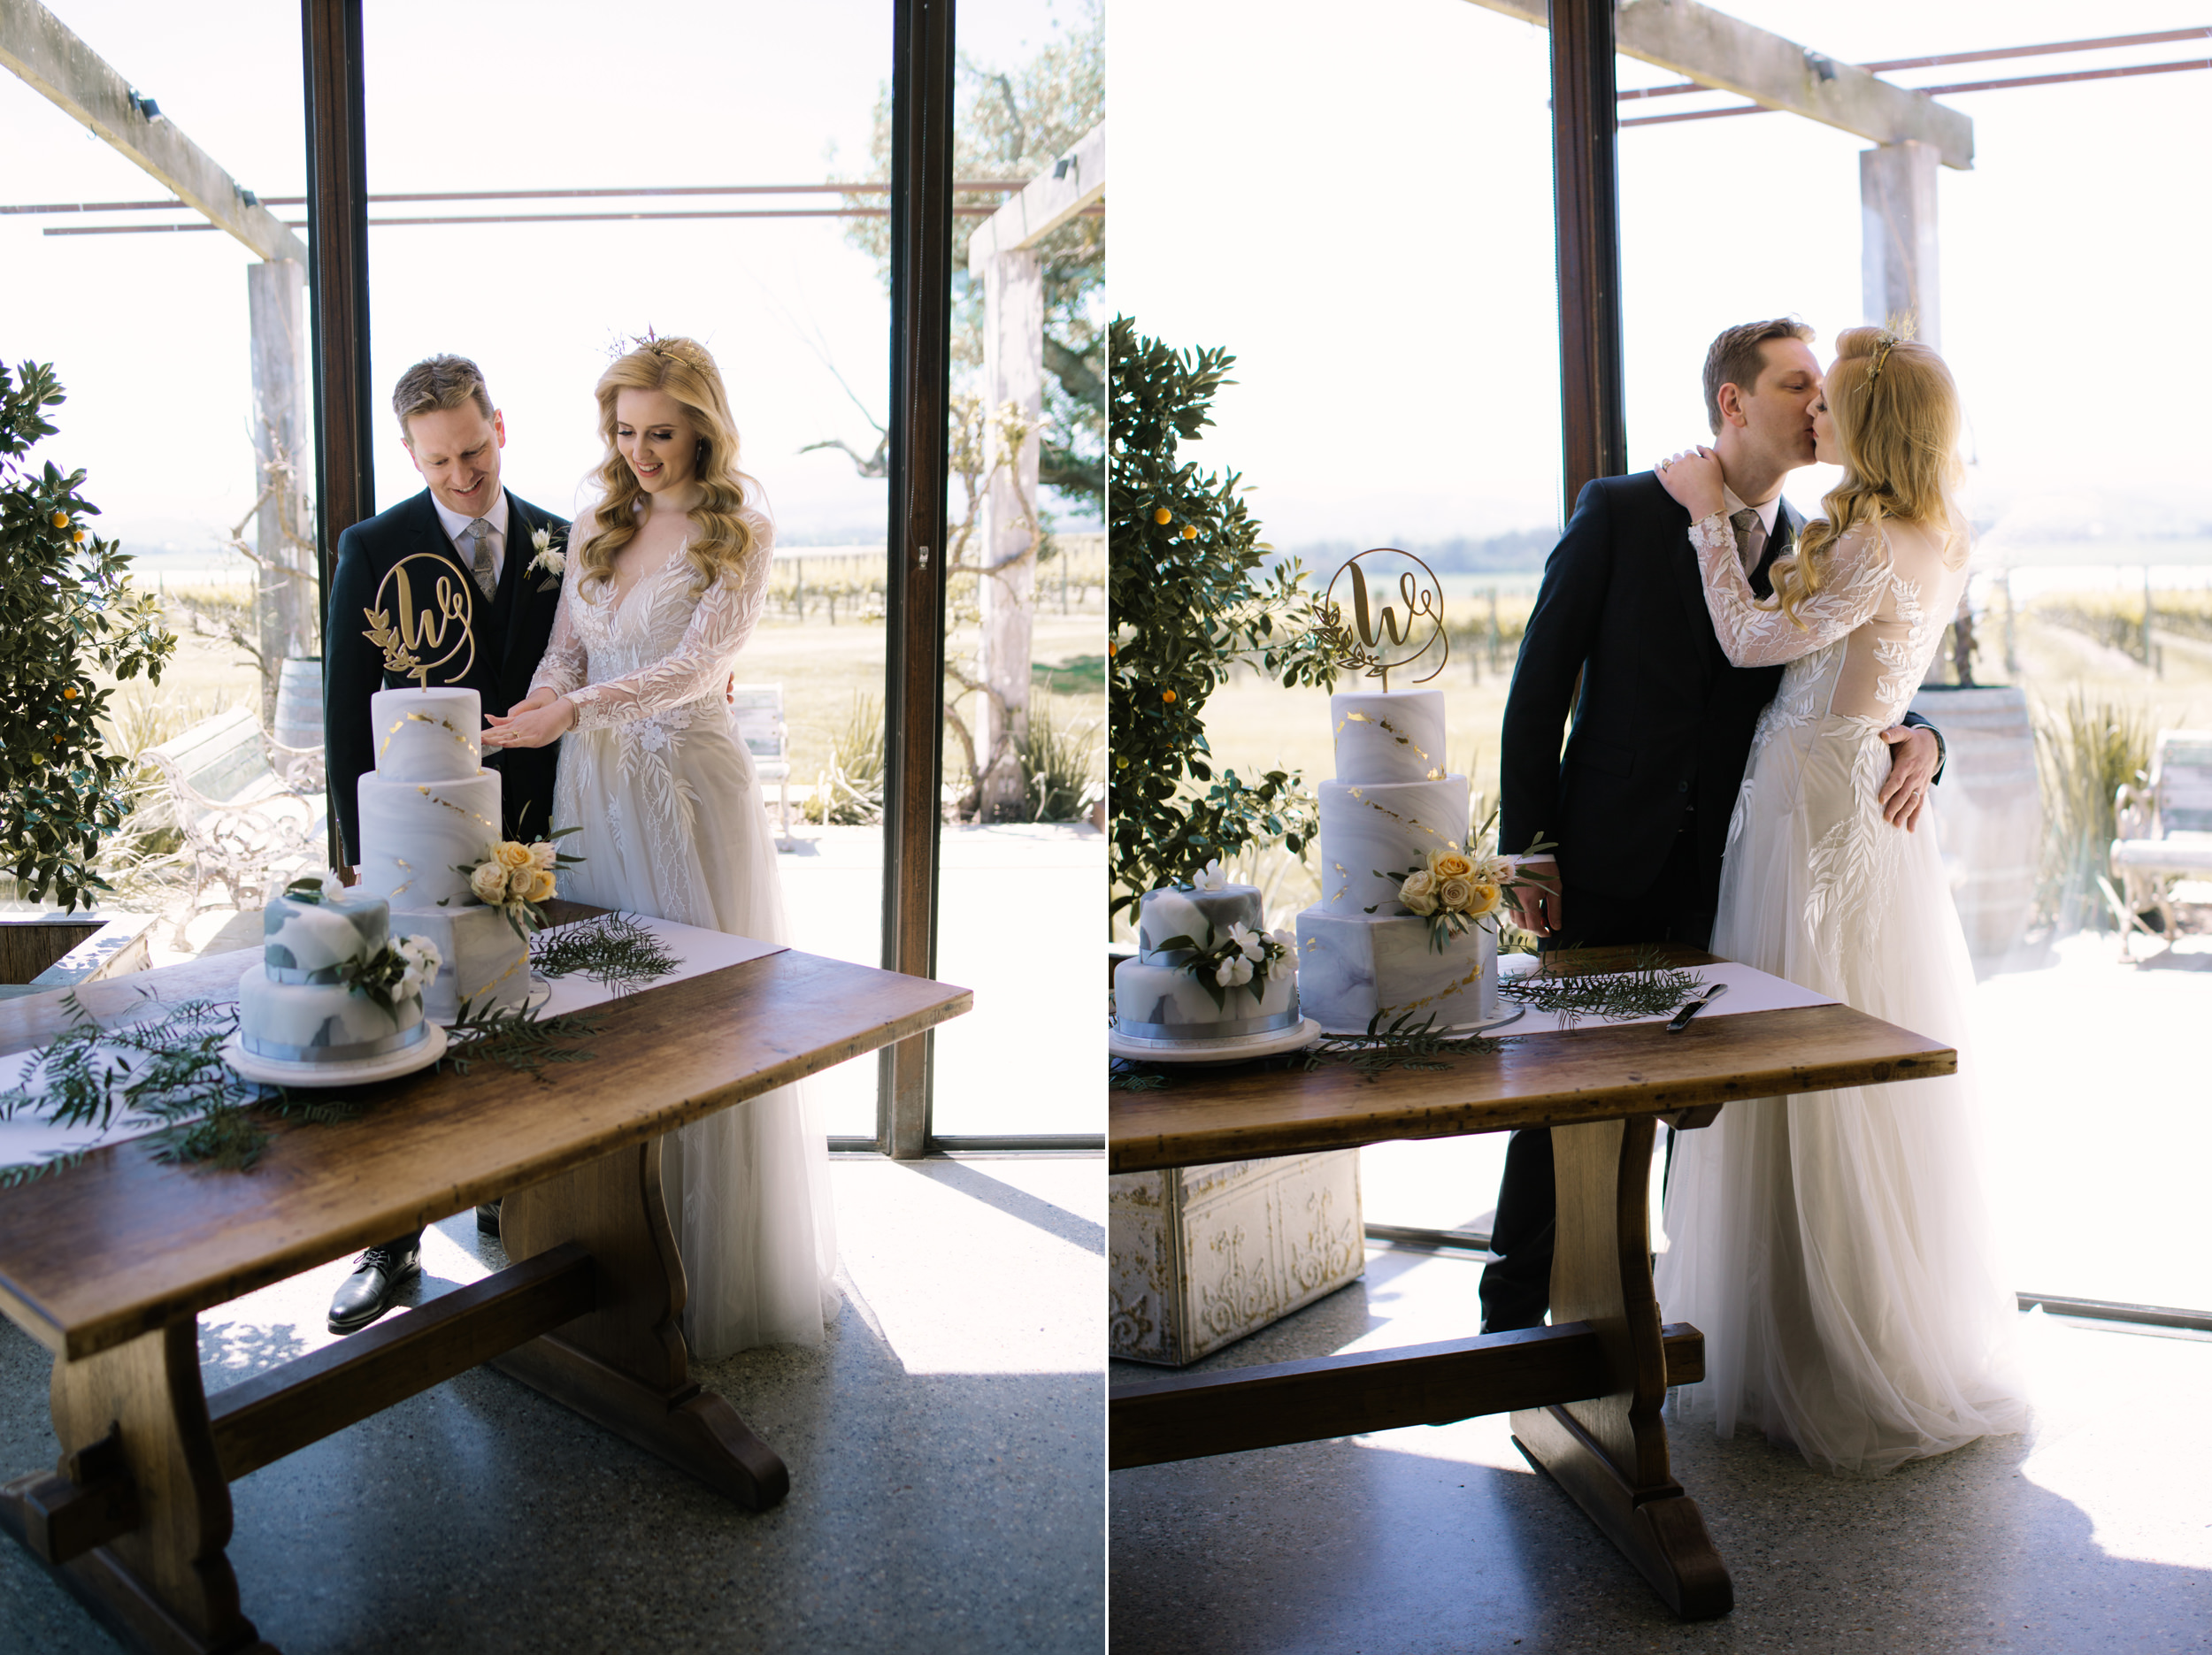 I-Got-You-Babe-&.Co.-Stones-of-the-Yarra-Valley-Wedding-Beverly-Ross0135.JPG